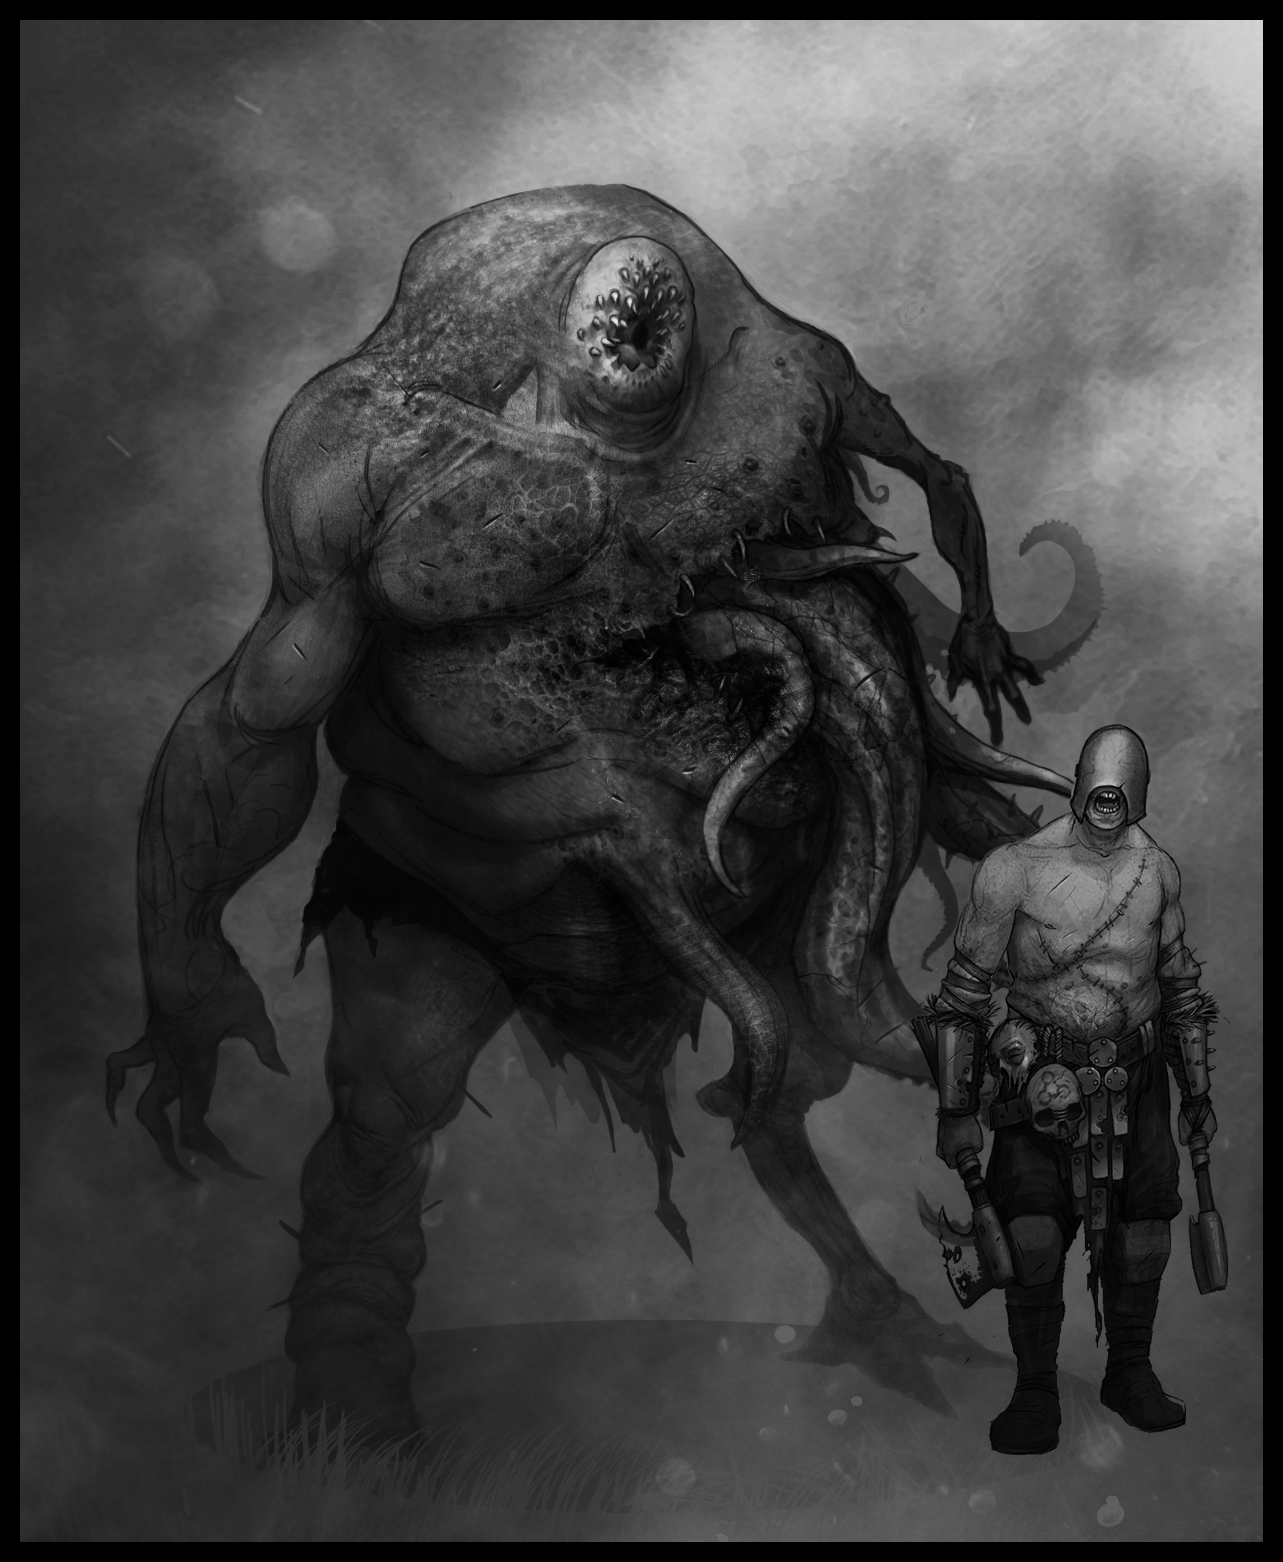 Concept Art of the Chaos Spawn - From the concept art we knew the size of the Chaos Spawn and the overall look. From this we had enough knowledge to cover a wide variation of gameplay elements that might pop up: grabbing with tentacles, biting/sucking with head appendage and etc.The gameplay was worked on continuously during the character creation. We also needed to keep the belief that this was a human being that turned down a bad path a couple of times too many.